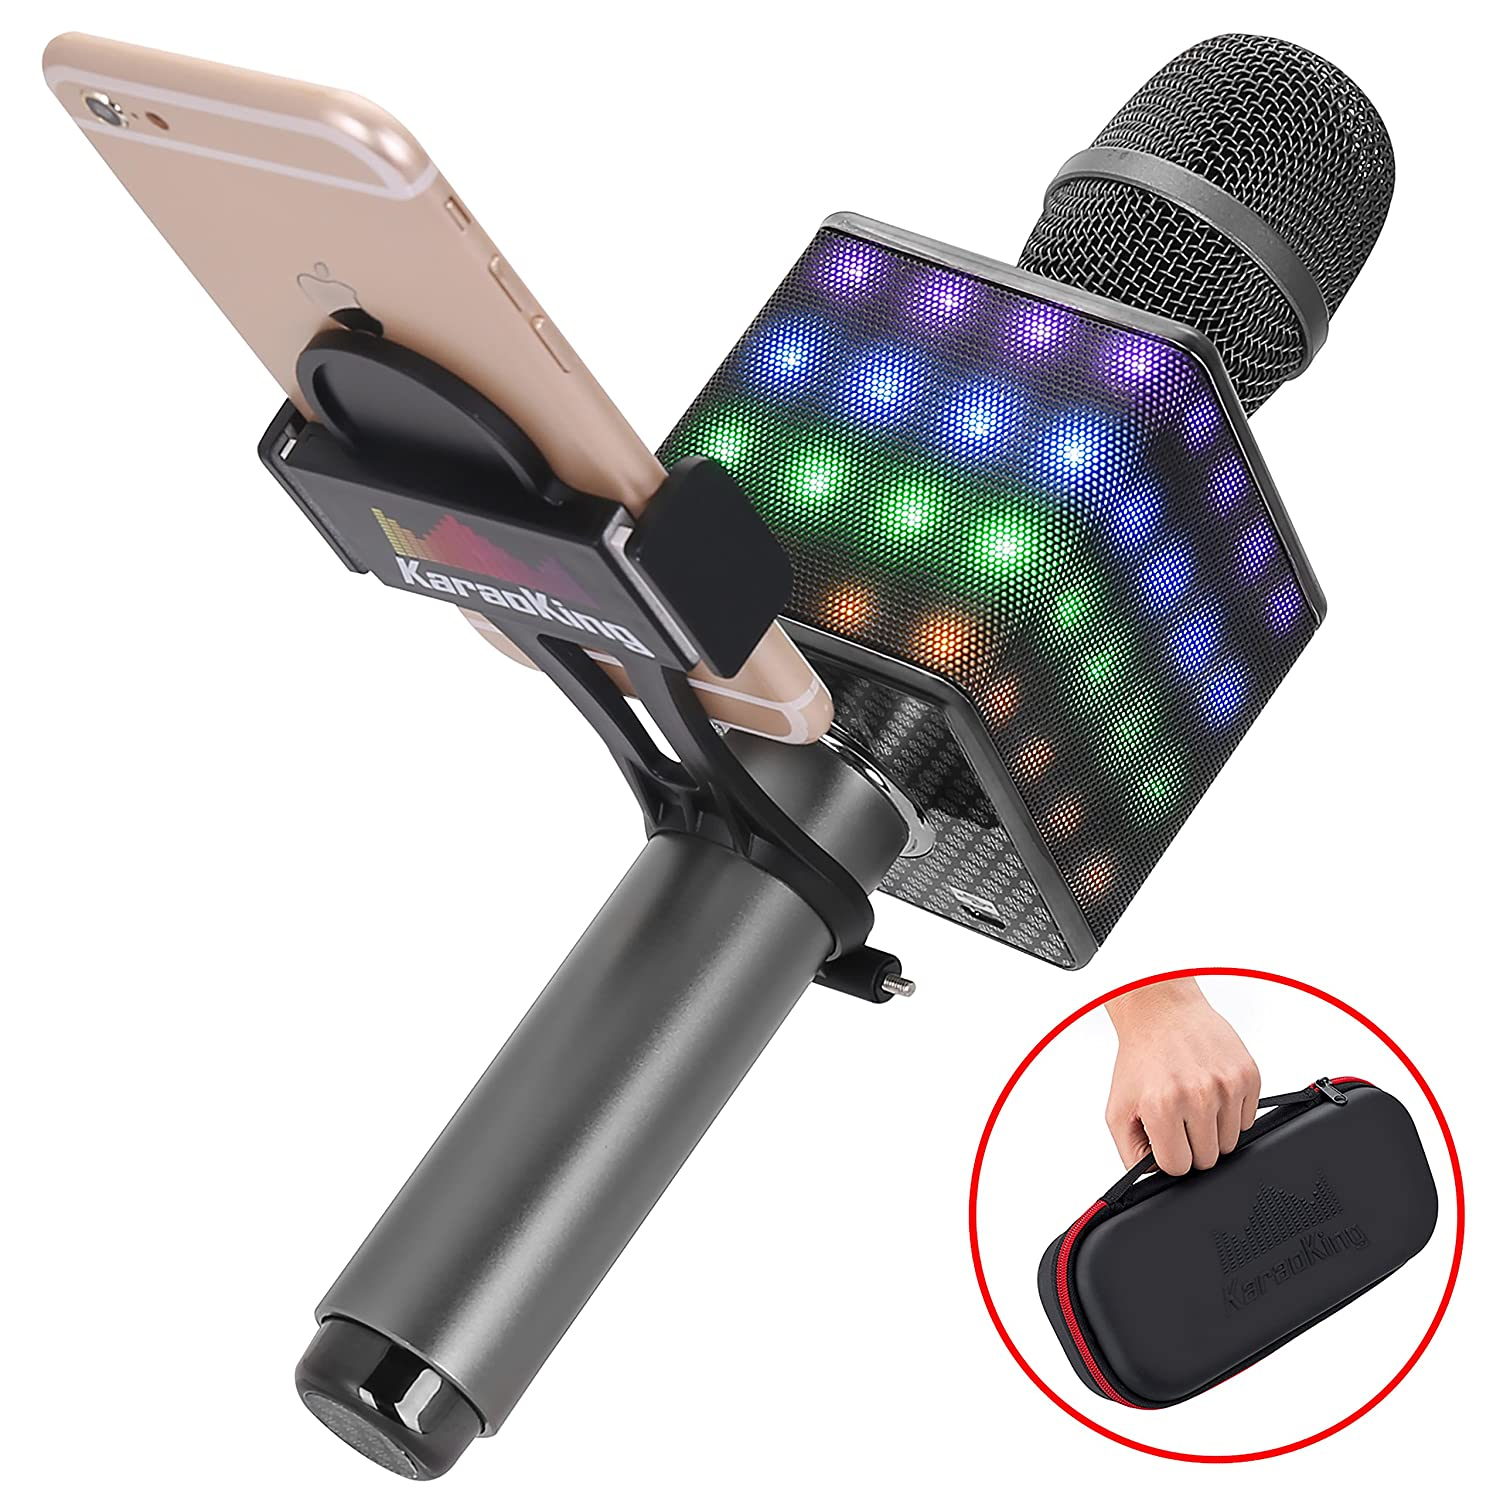 Wireless Bluetooth Karaoke Microphone - Portable KTV Karaoke Machine with Speaker, LED Lights & FREE Phone Holder Perfect for Pop, Rock n' Roll Parties, Solo Parties & More (H8 2.0 Gold) Rock n' Roll Parties KaraoKing HG1